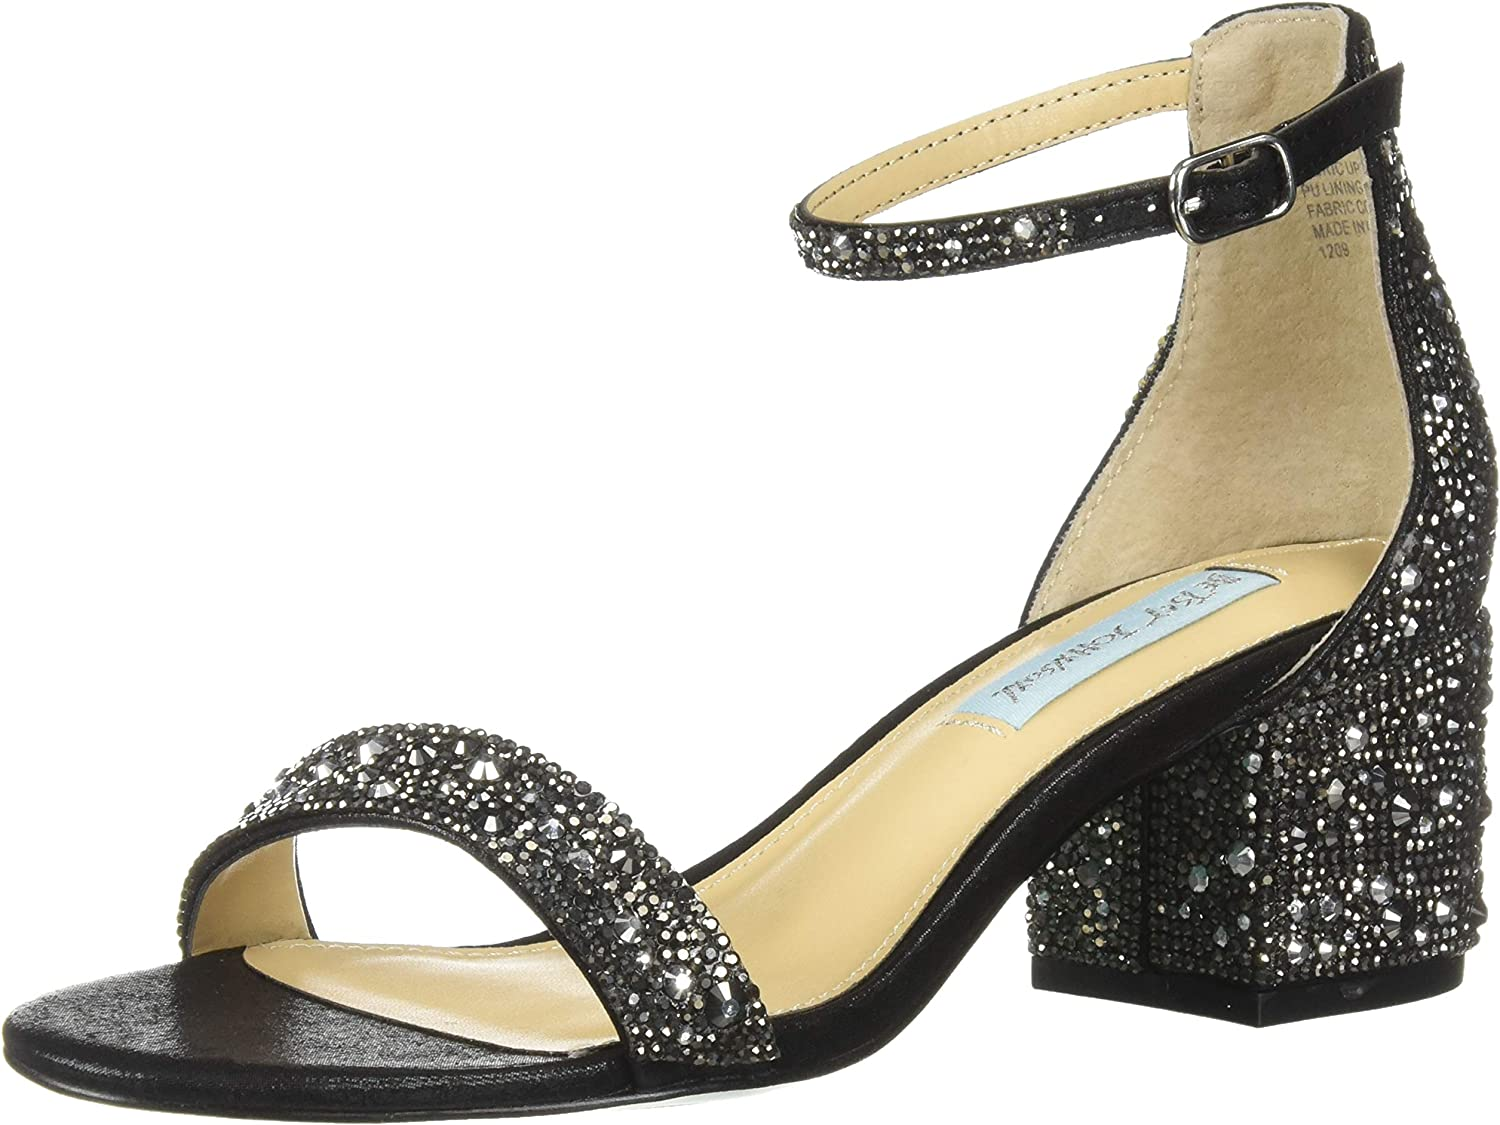 Betsey Johnson Womens Sb-mari Heeled Sandal